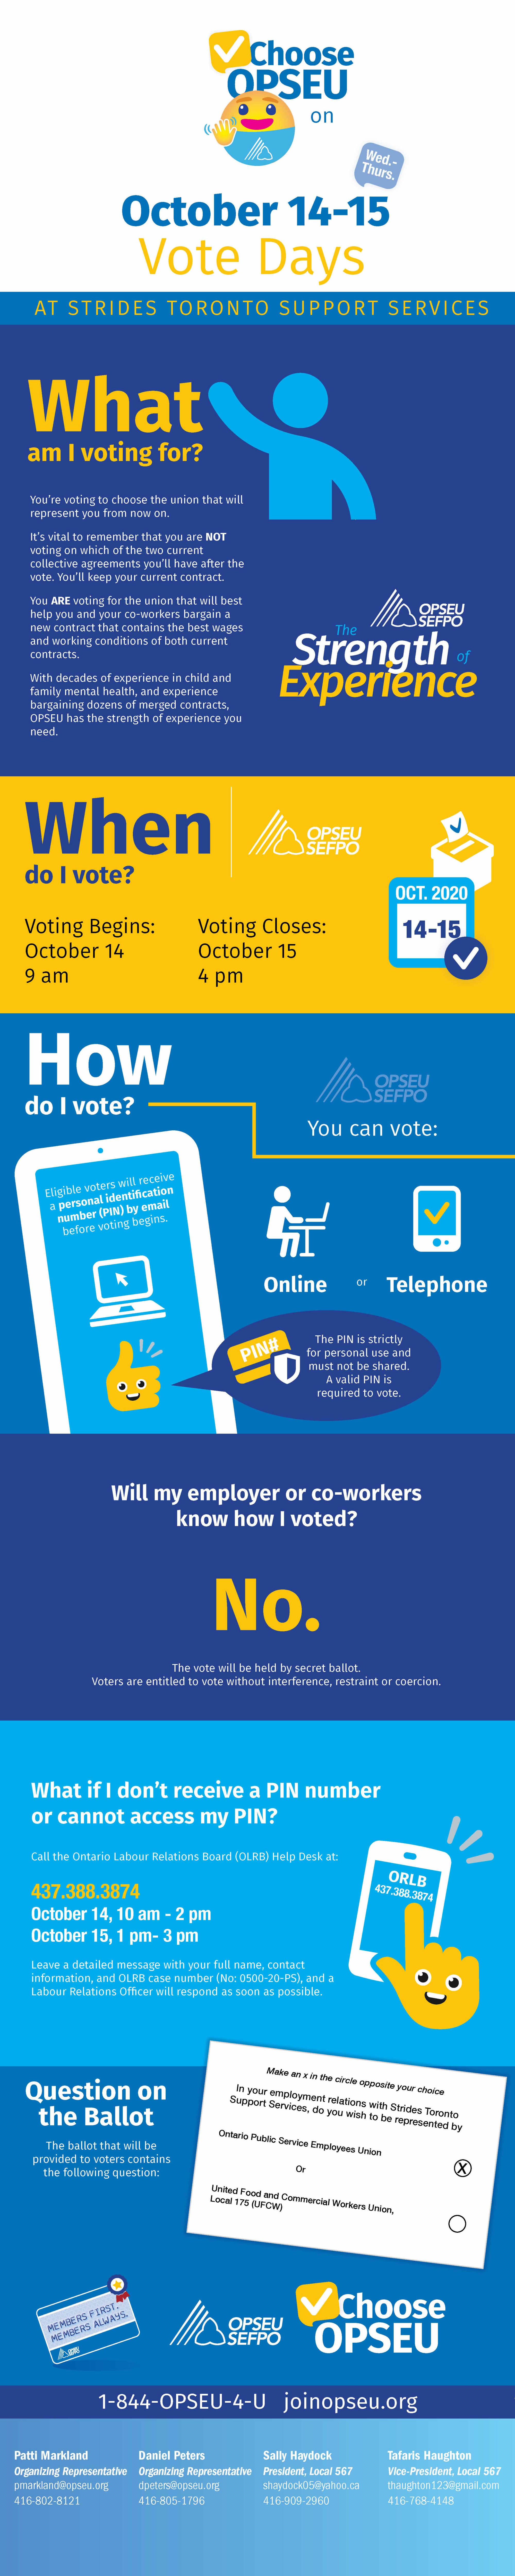 Choose OPSEU Infographic, October 13-15, Vote Days.